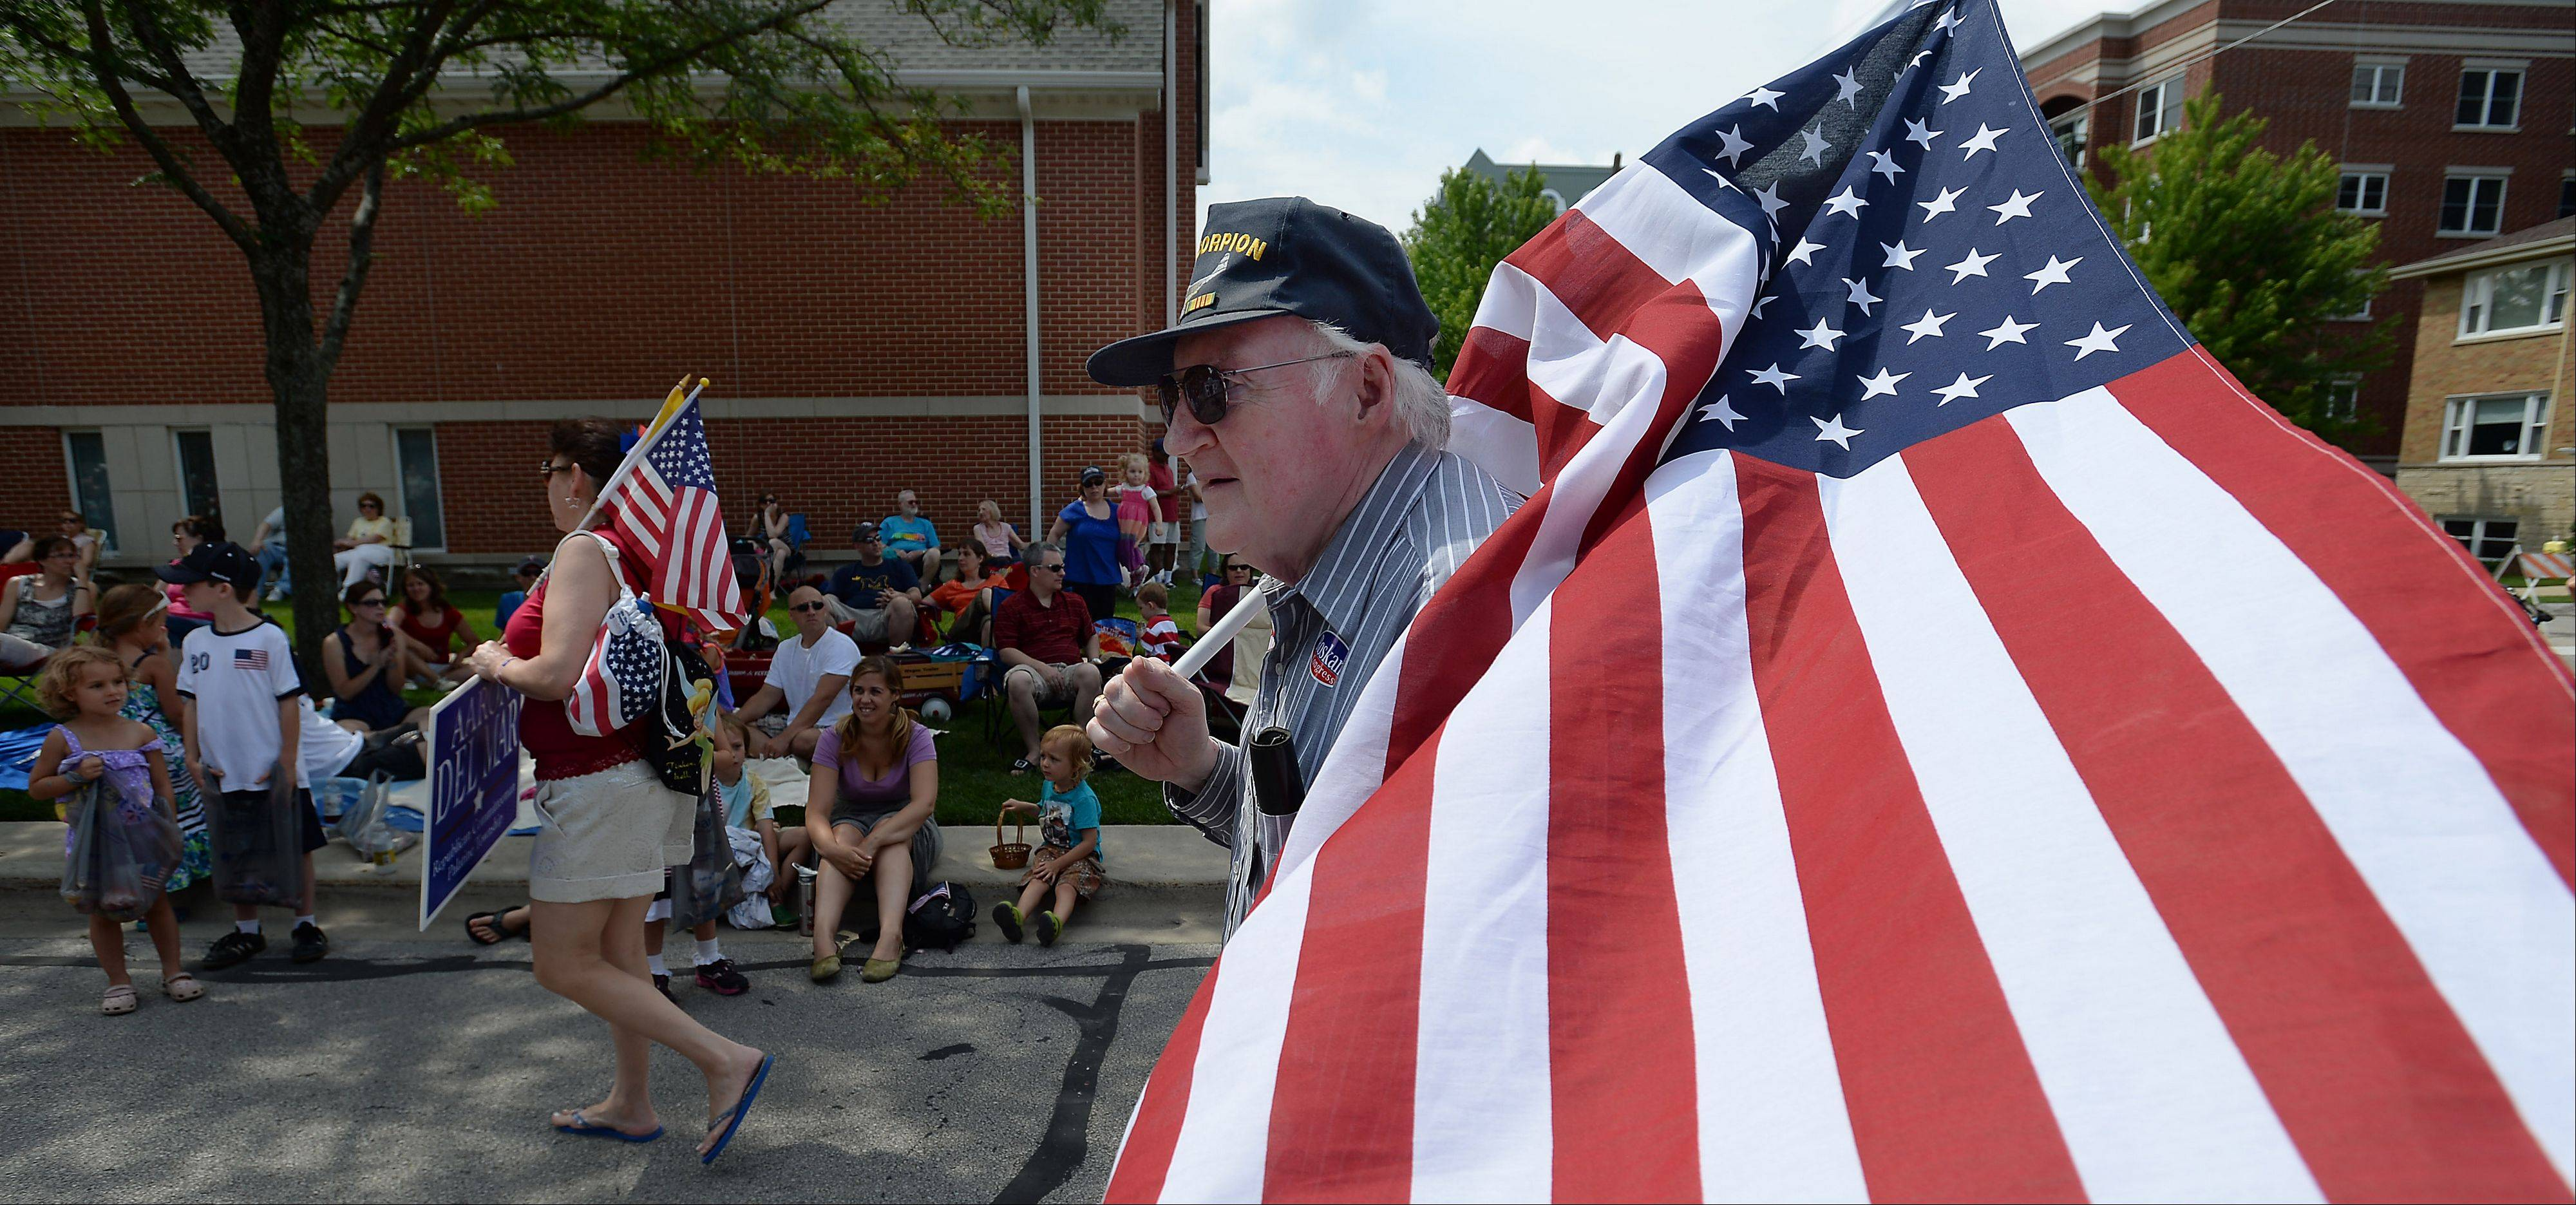 Richard Maxwell of Palatine shows his patriotic spirit during the Palatine Fourth of July parade on Saturday.